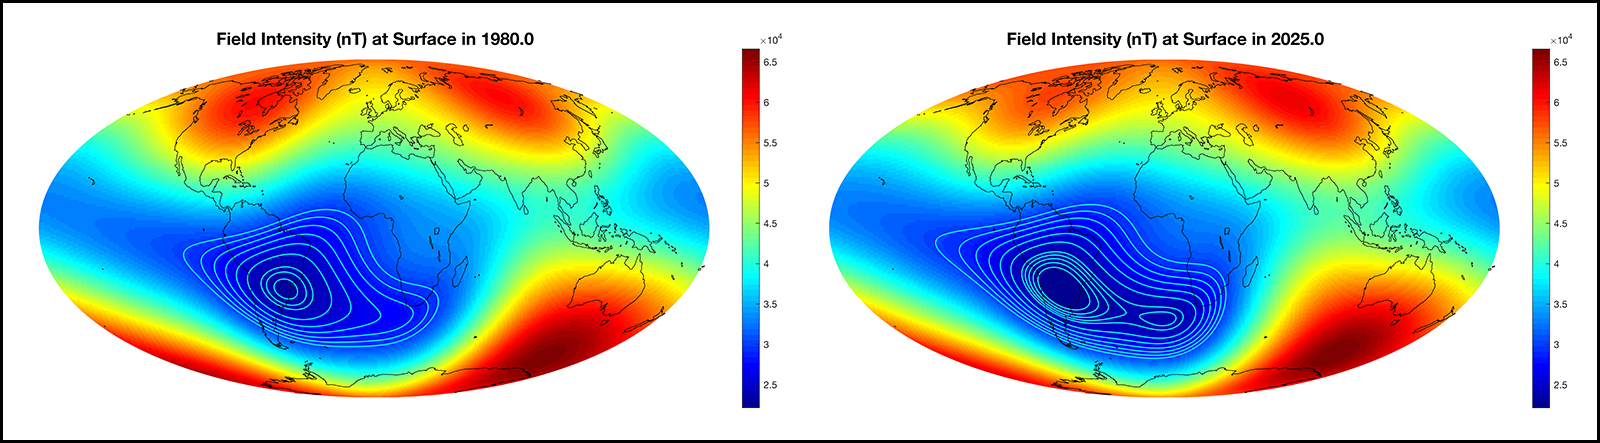 A world map of the magnetic field intensity today and in 5 years